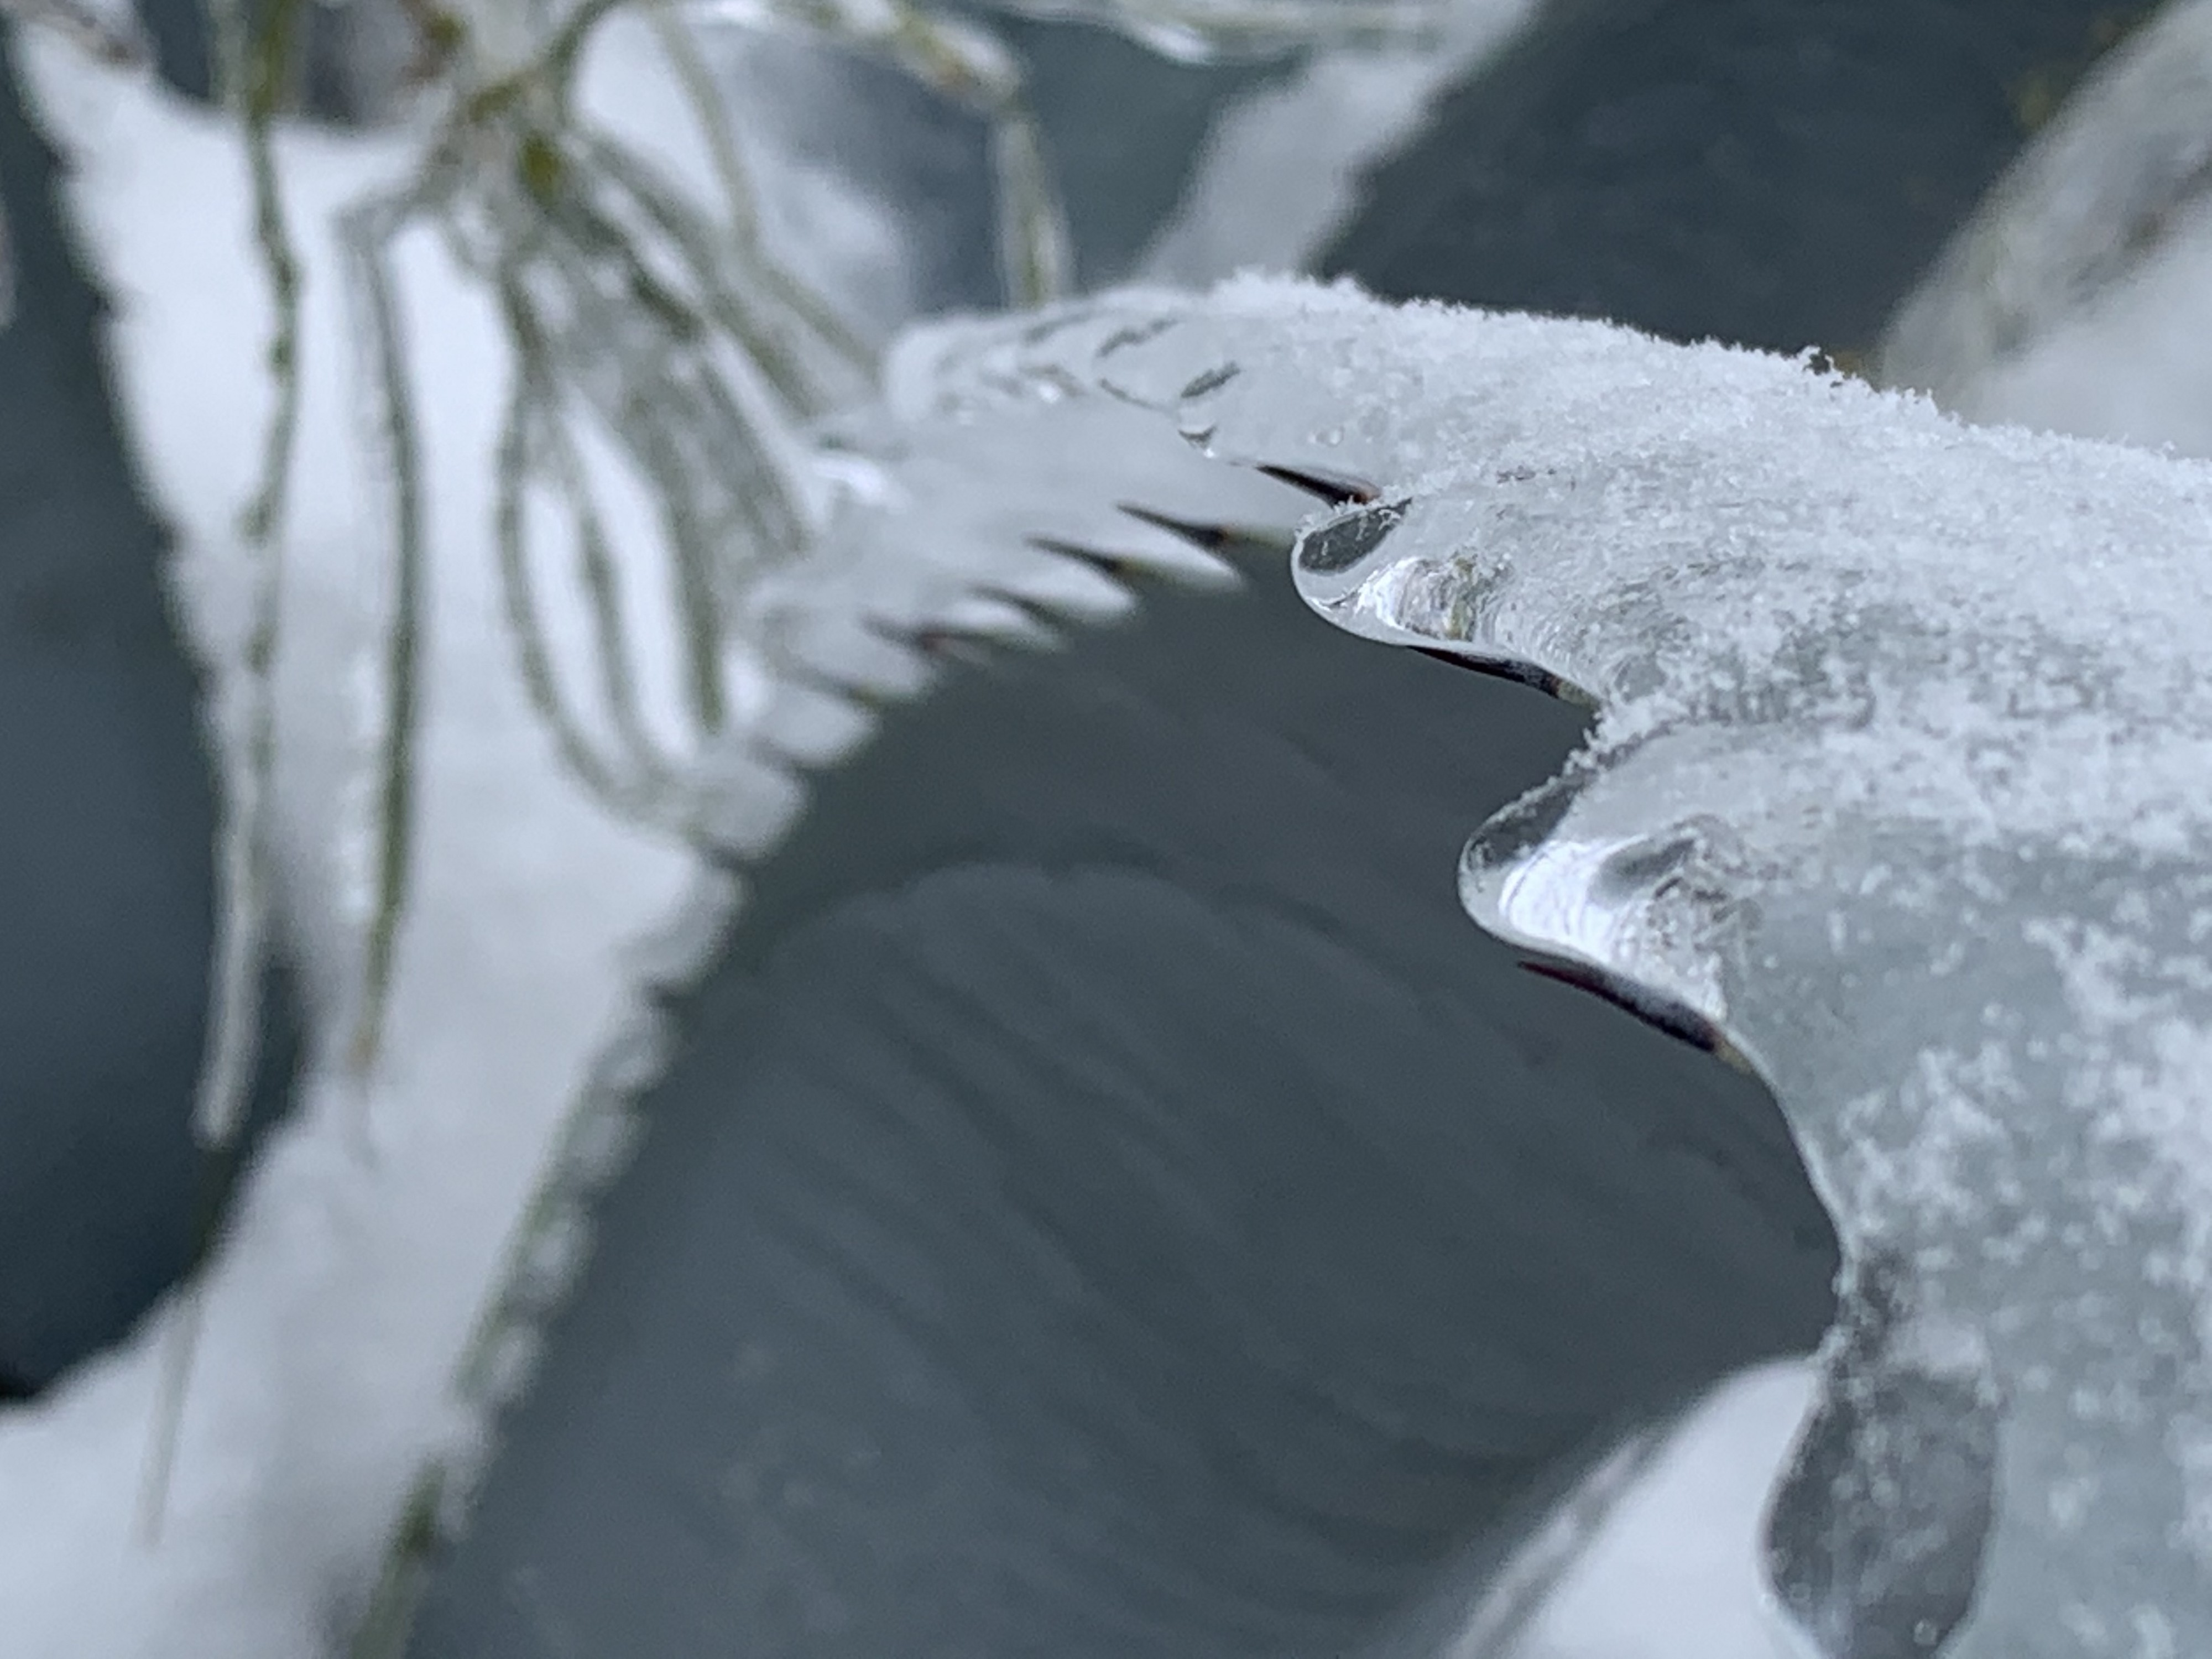 A prickly agave cactus leaf covered with ice and snow.